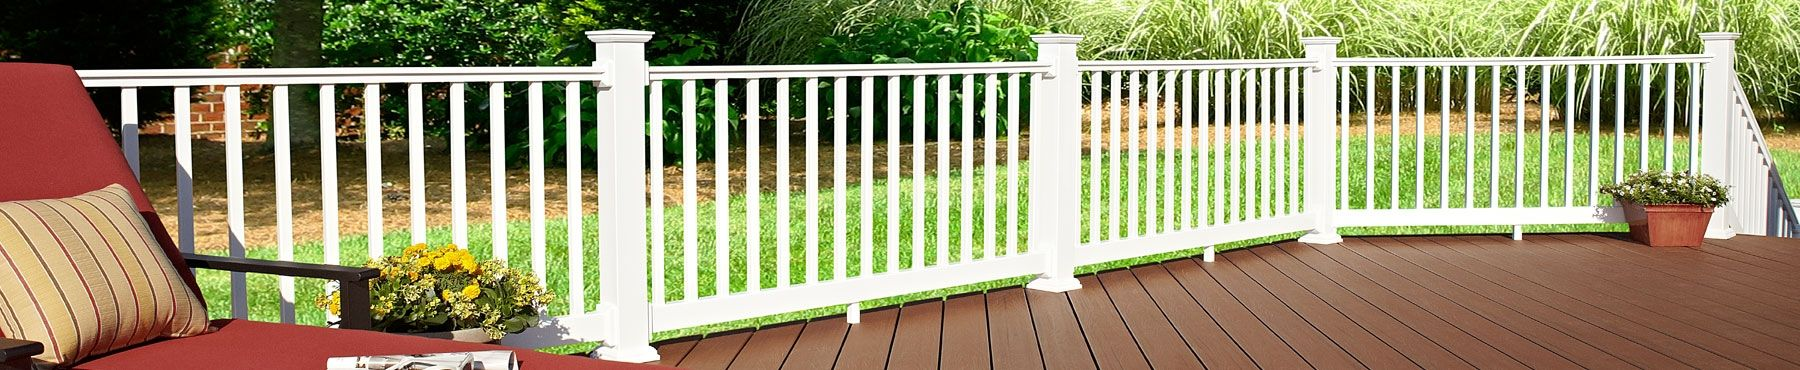 Pvc Railing White Deck Railing Homeselect